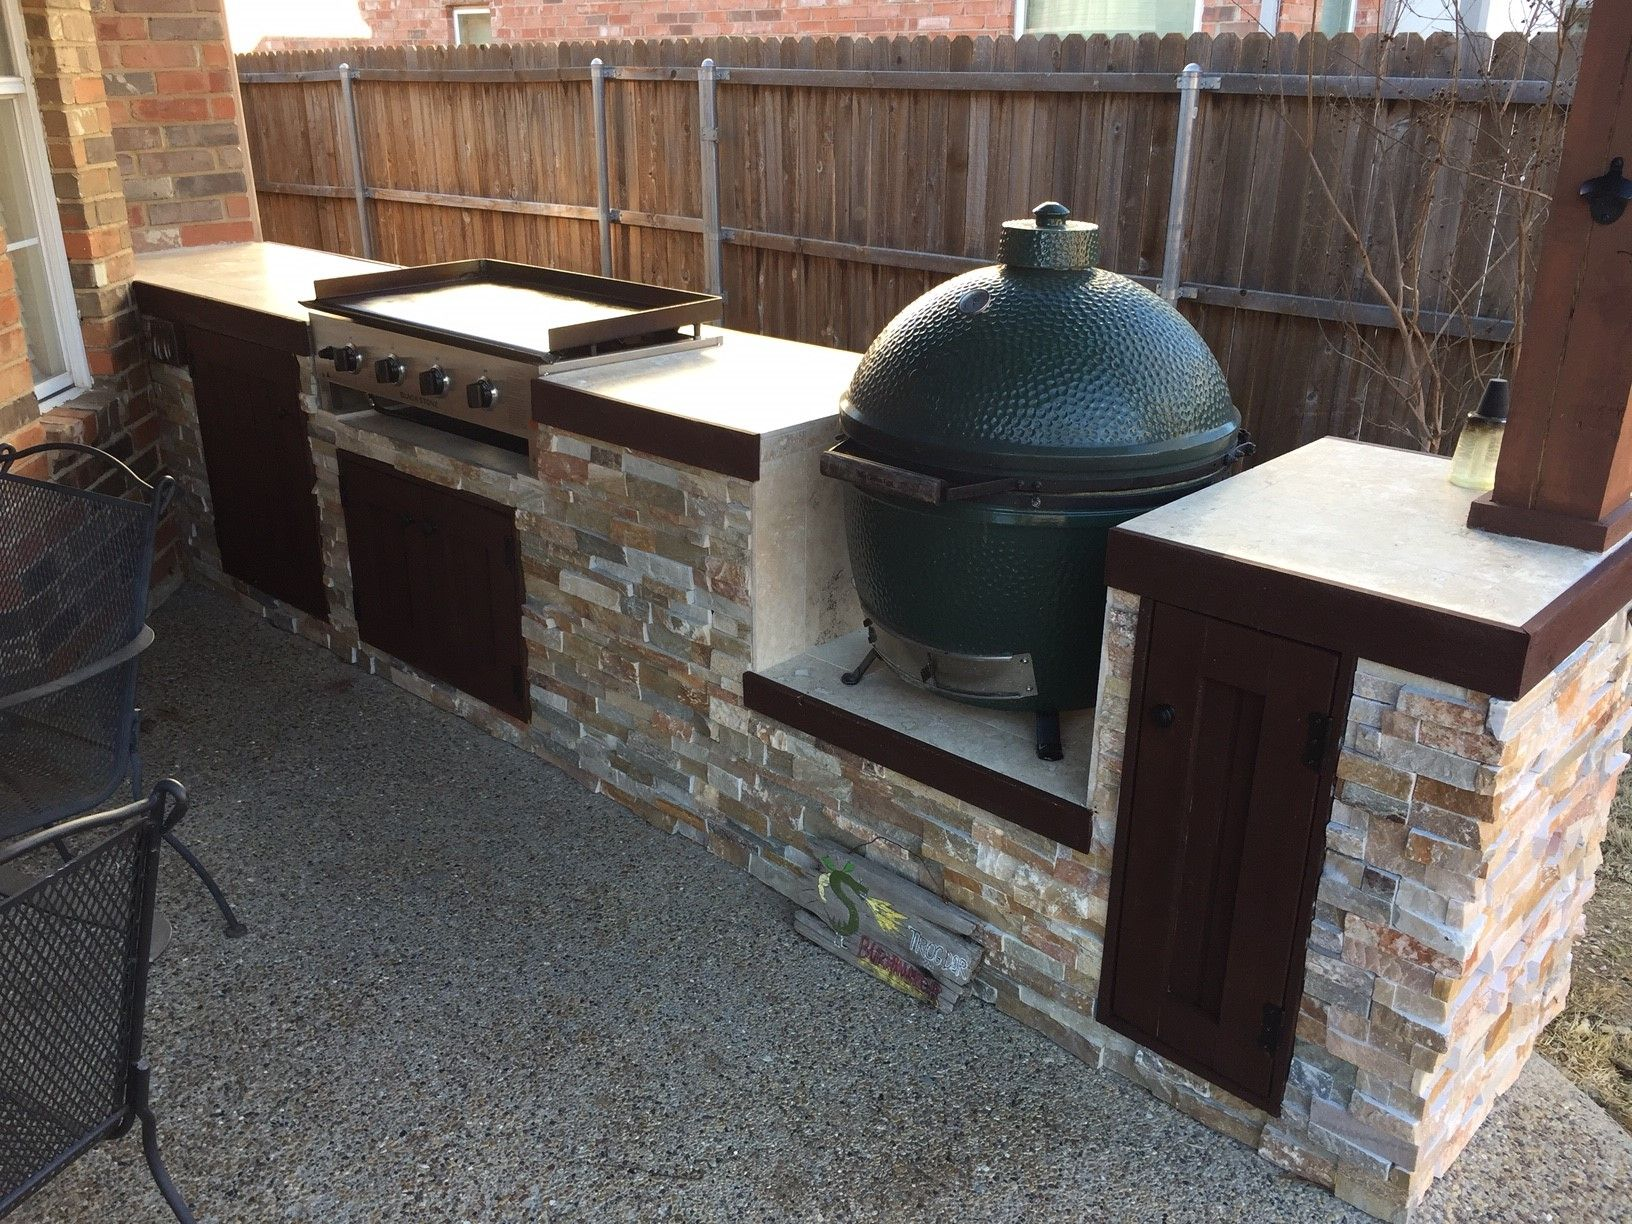 It was a bit of a drawn out process, but the outdoor kitchen & covered patio project that started before Thanksgiving is finally done!